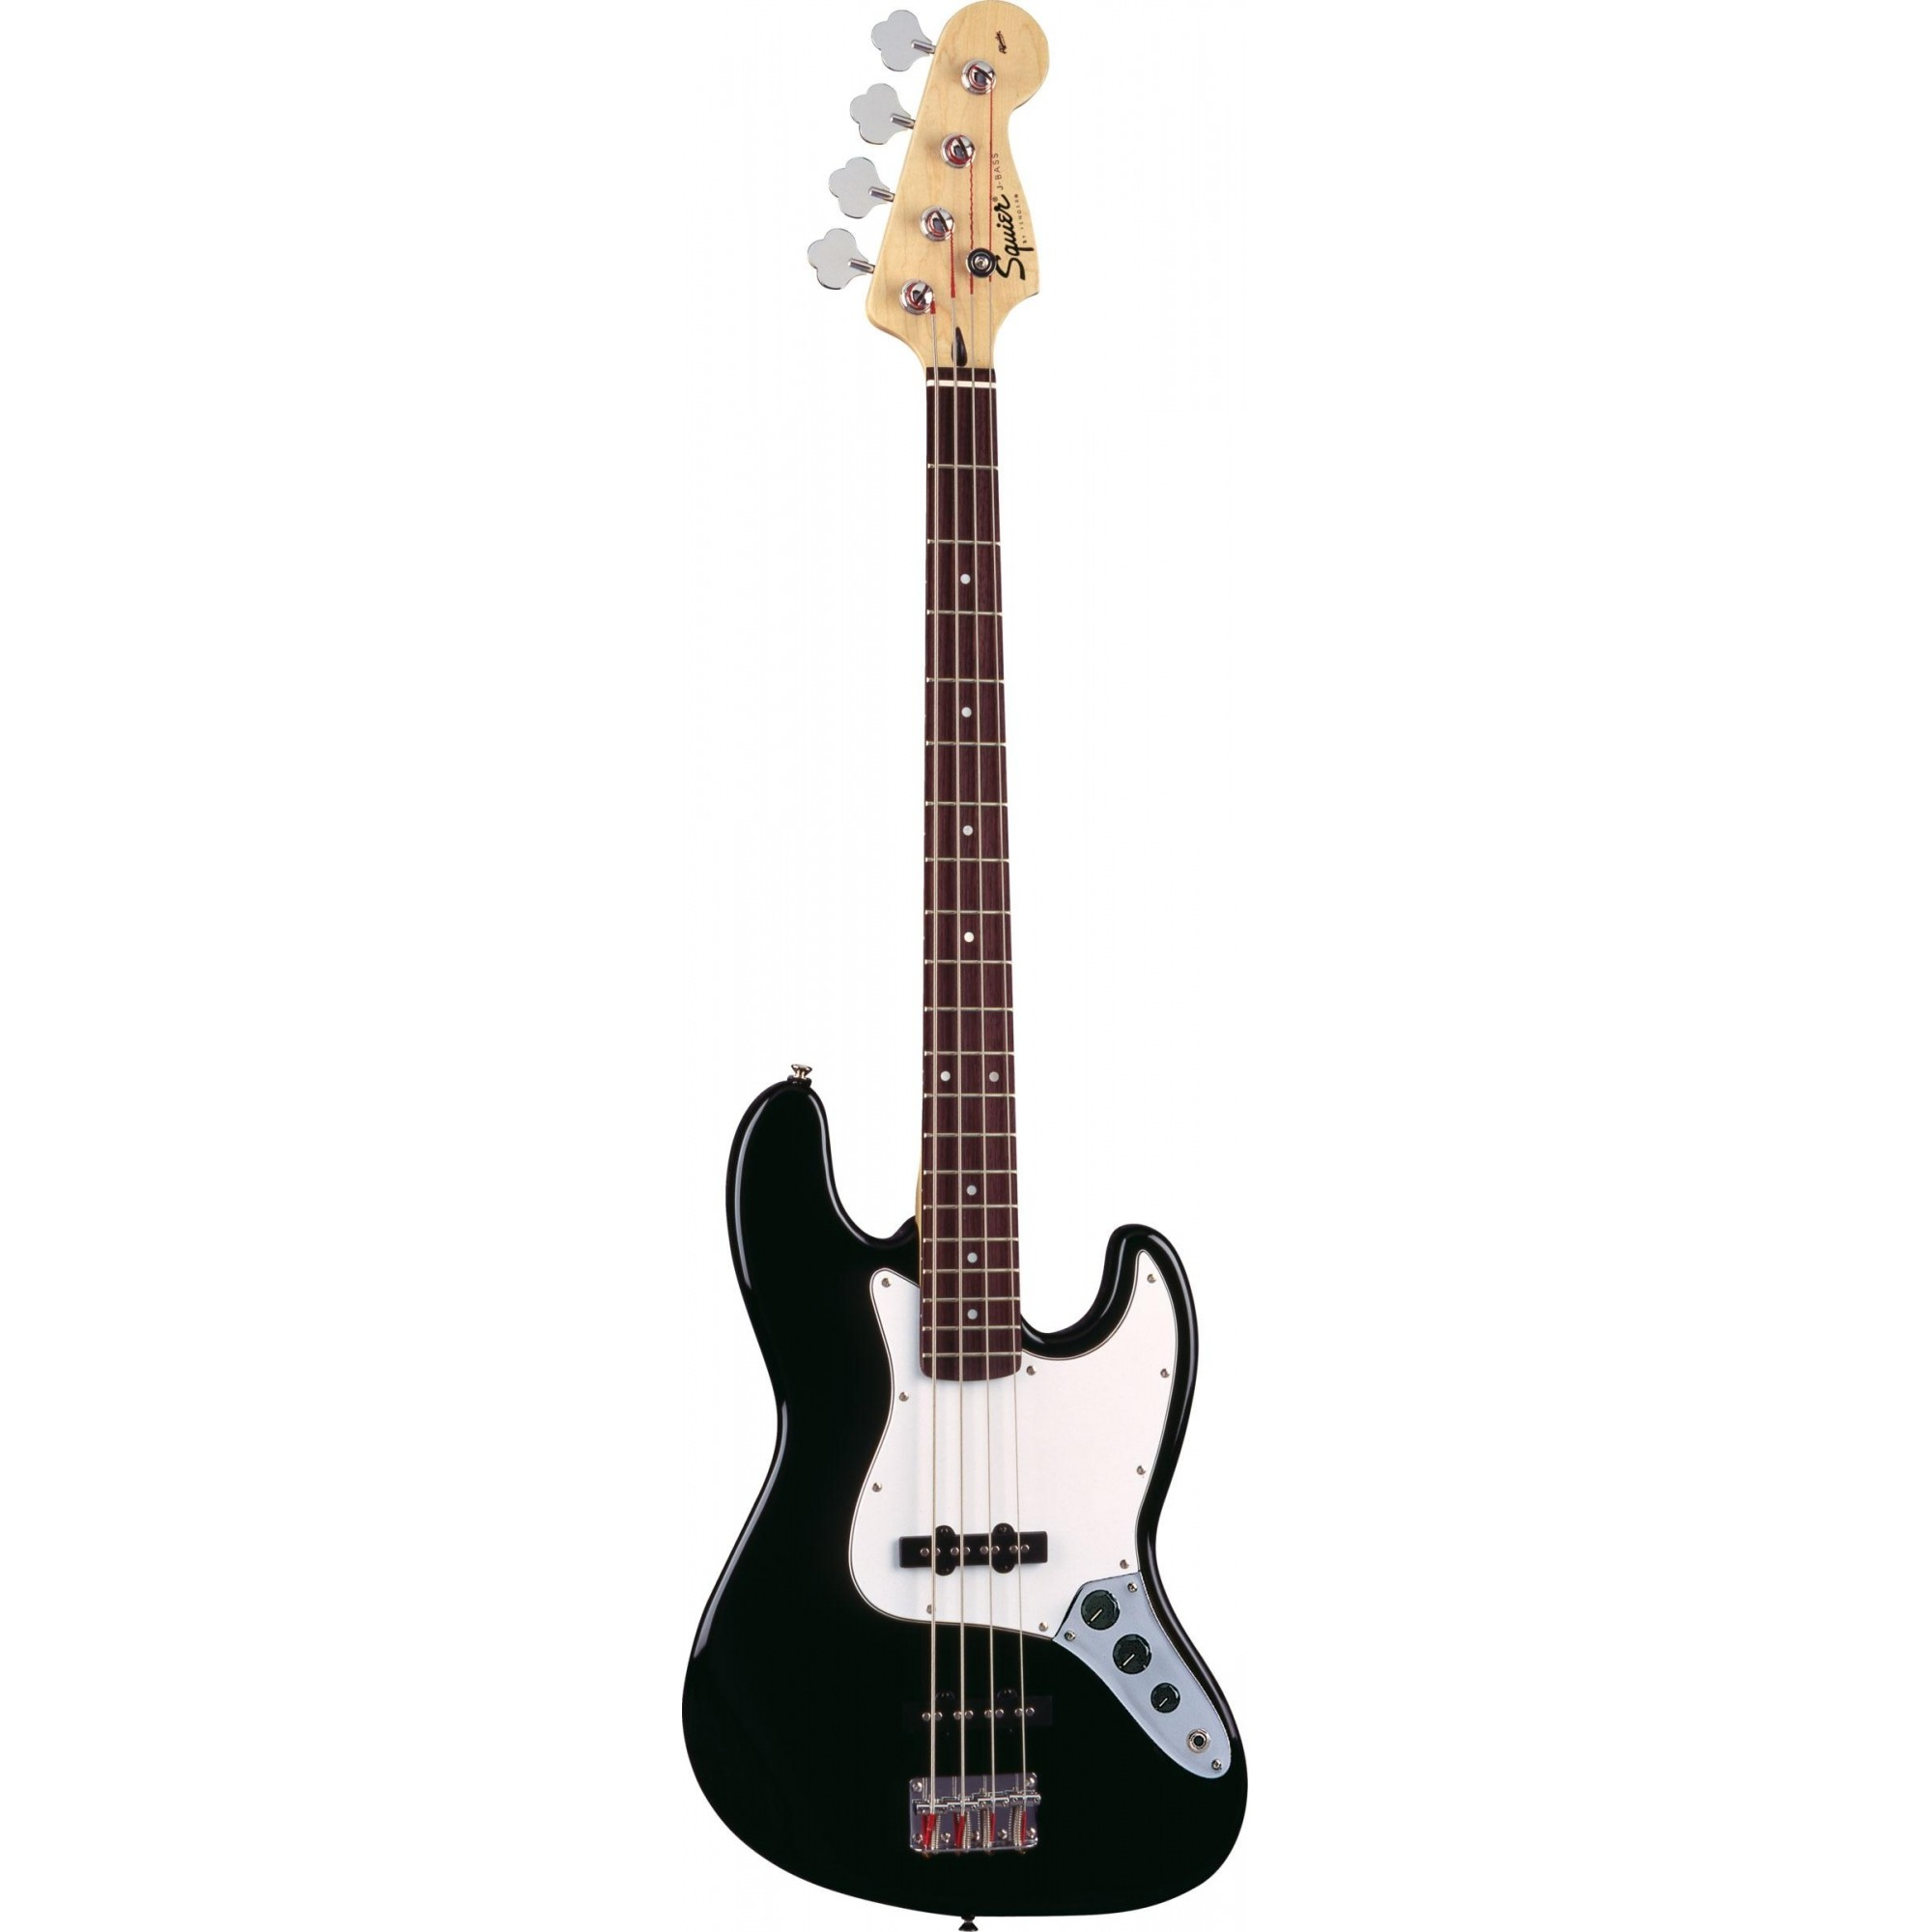 Baixo Fender Squier Affinity Jazz Bass Black